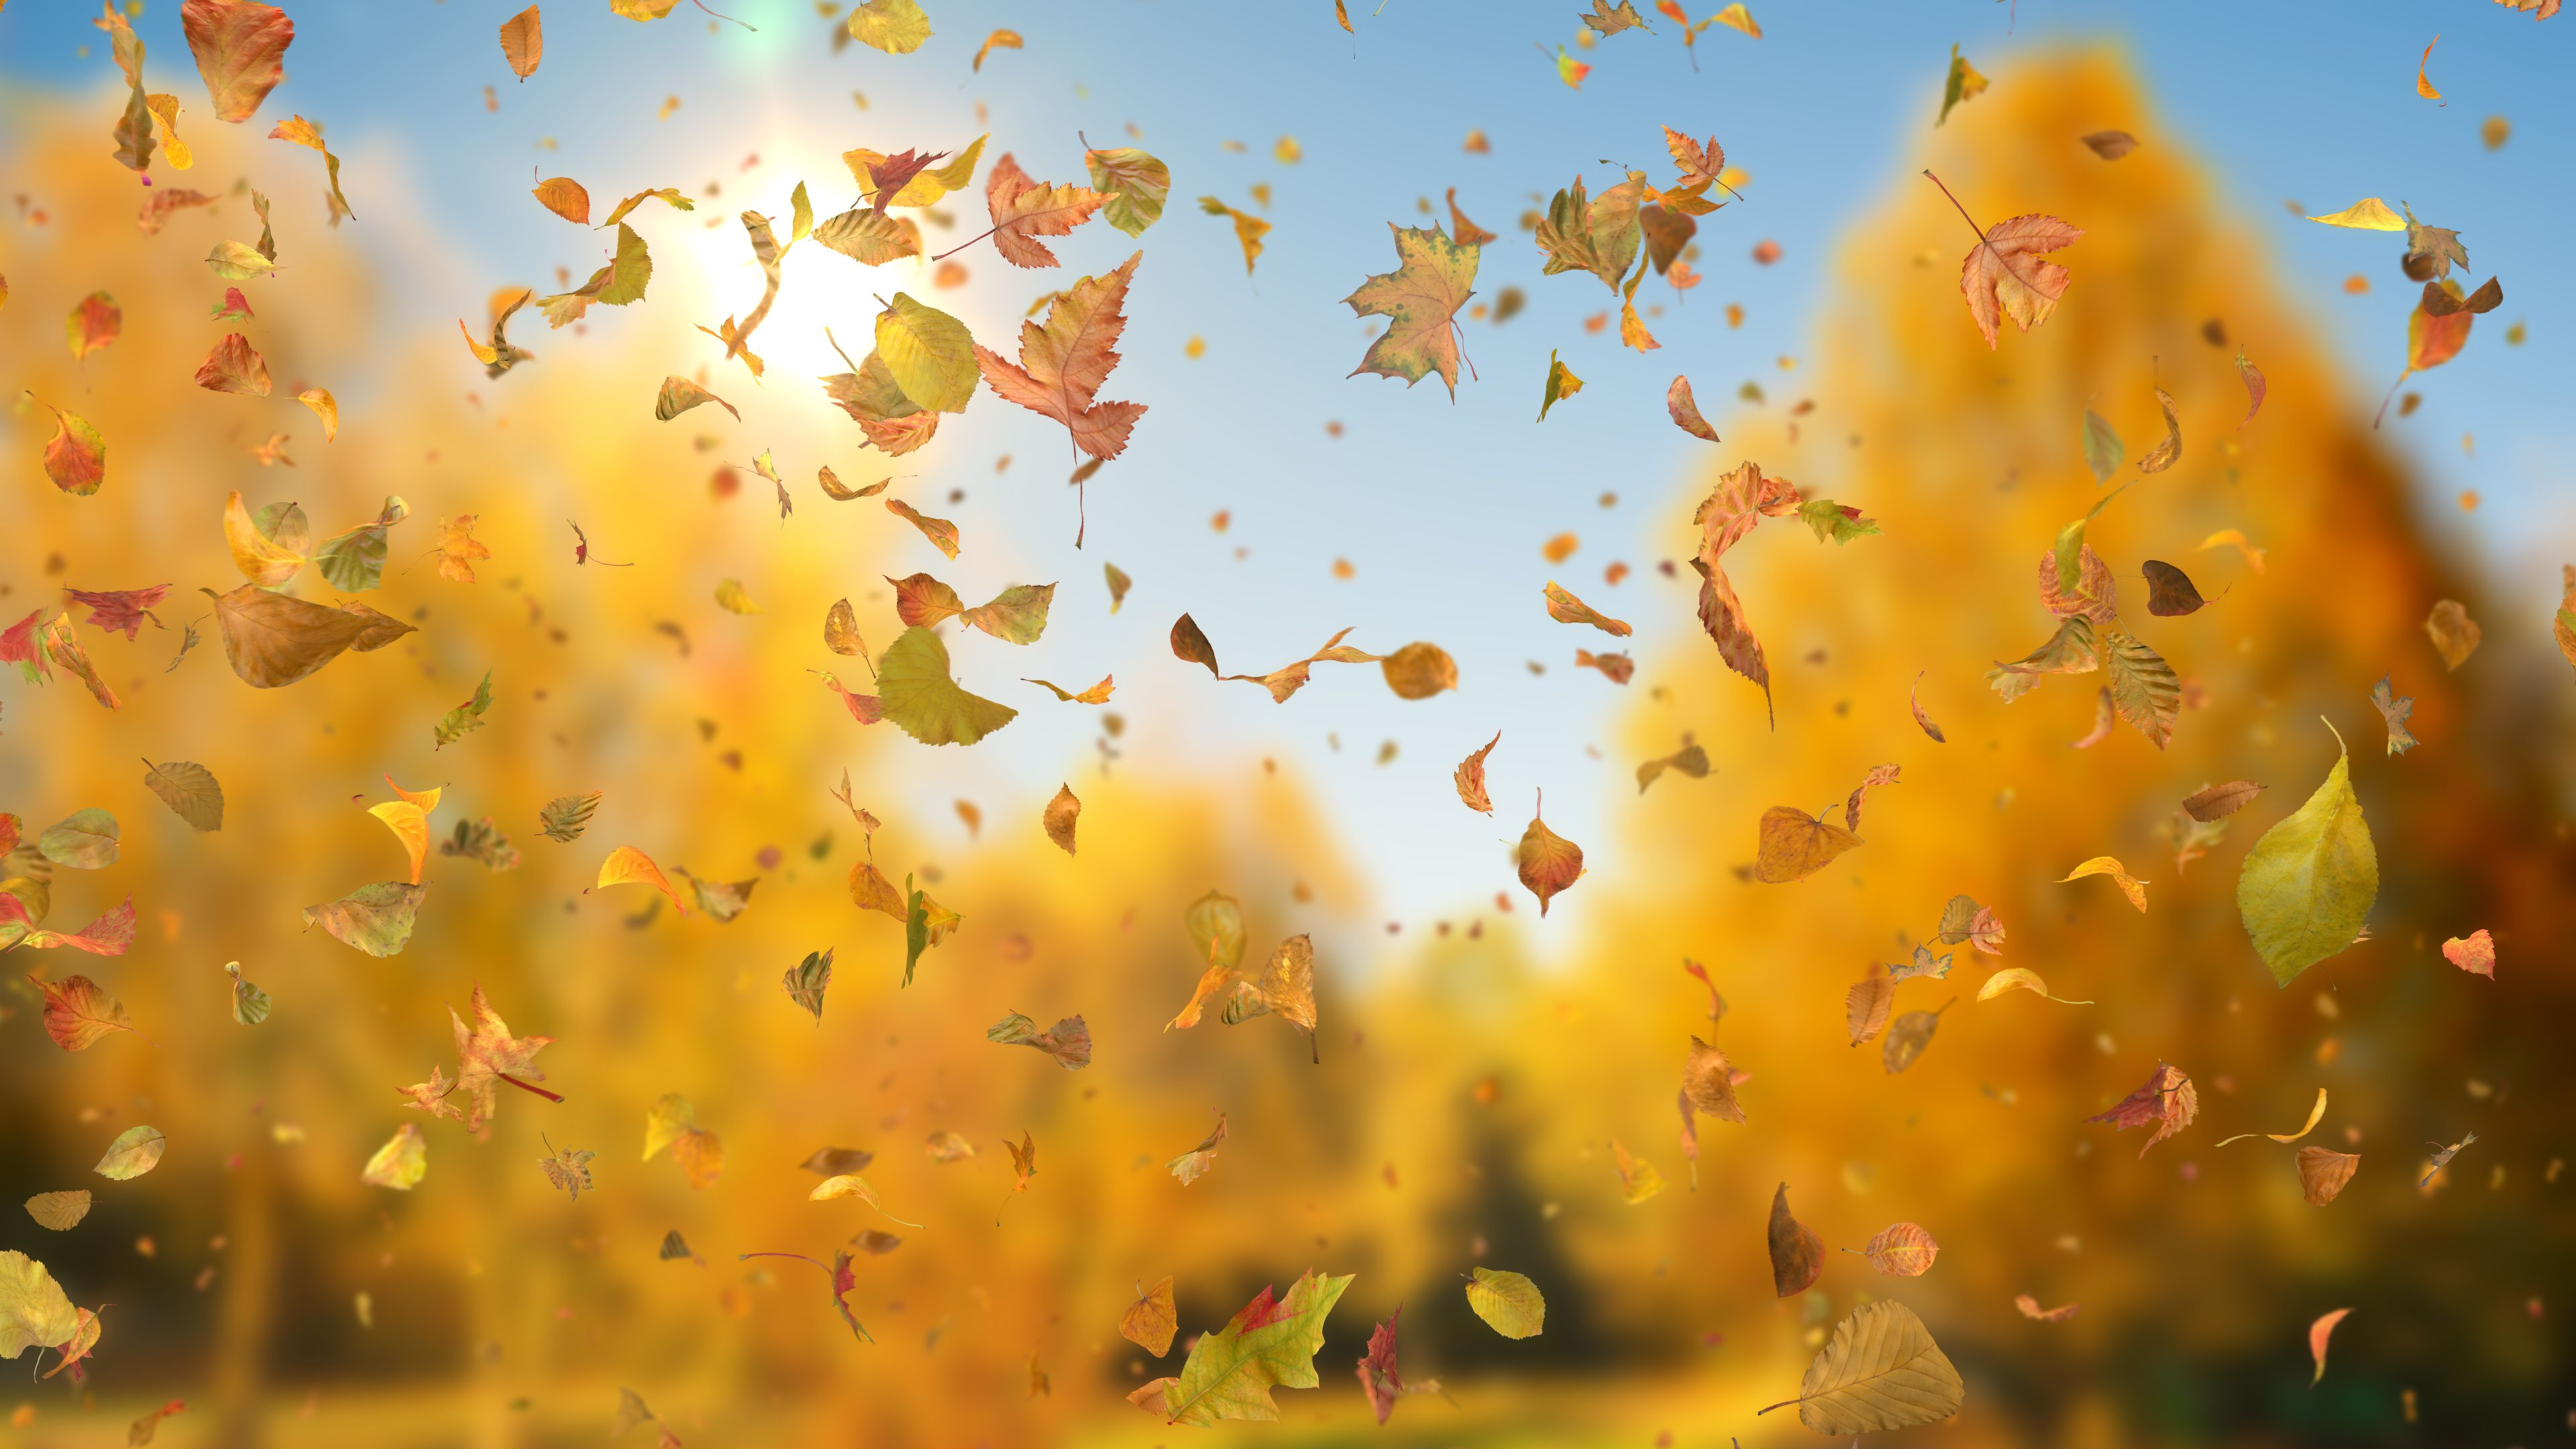 autumn fall leaves sideways downloops creative motion backgrounds